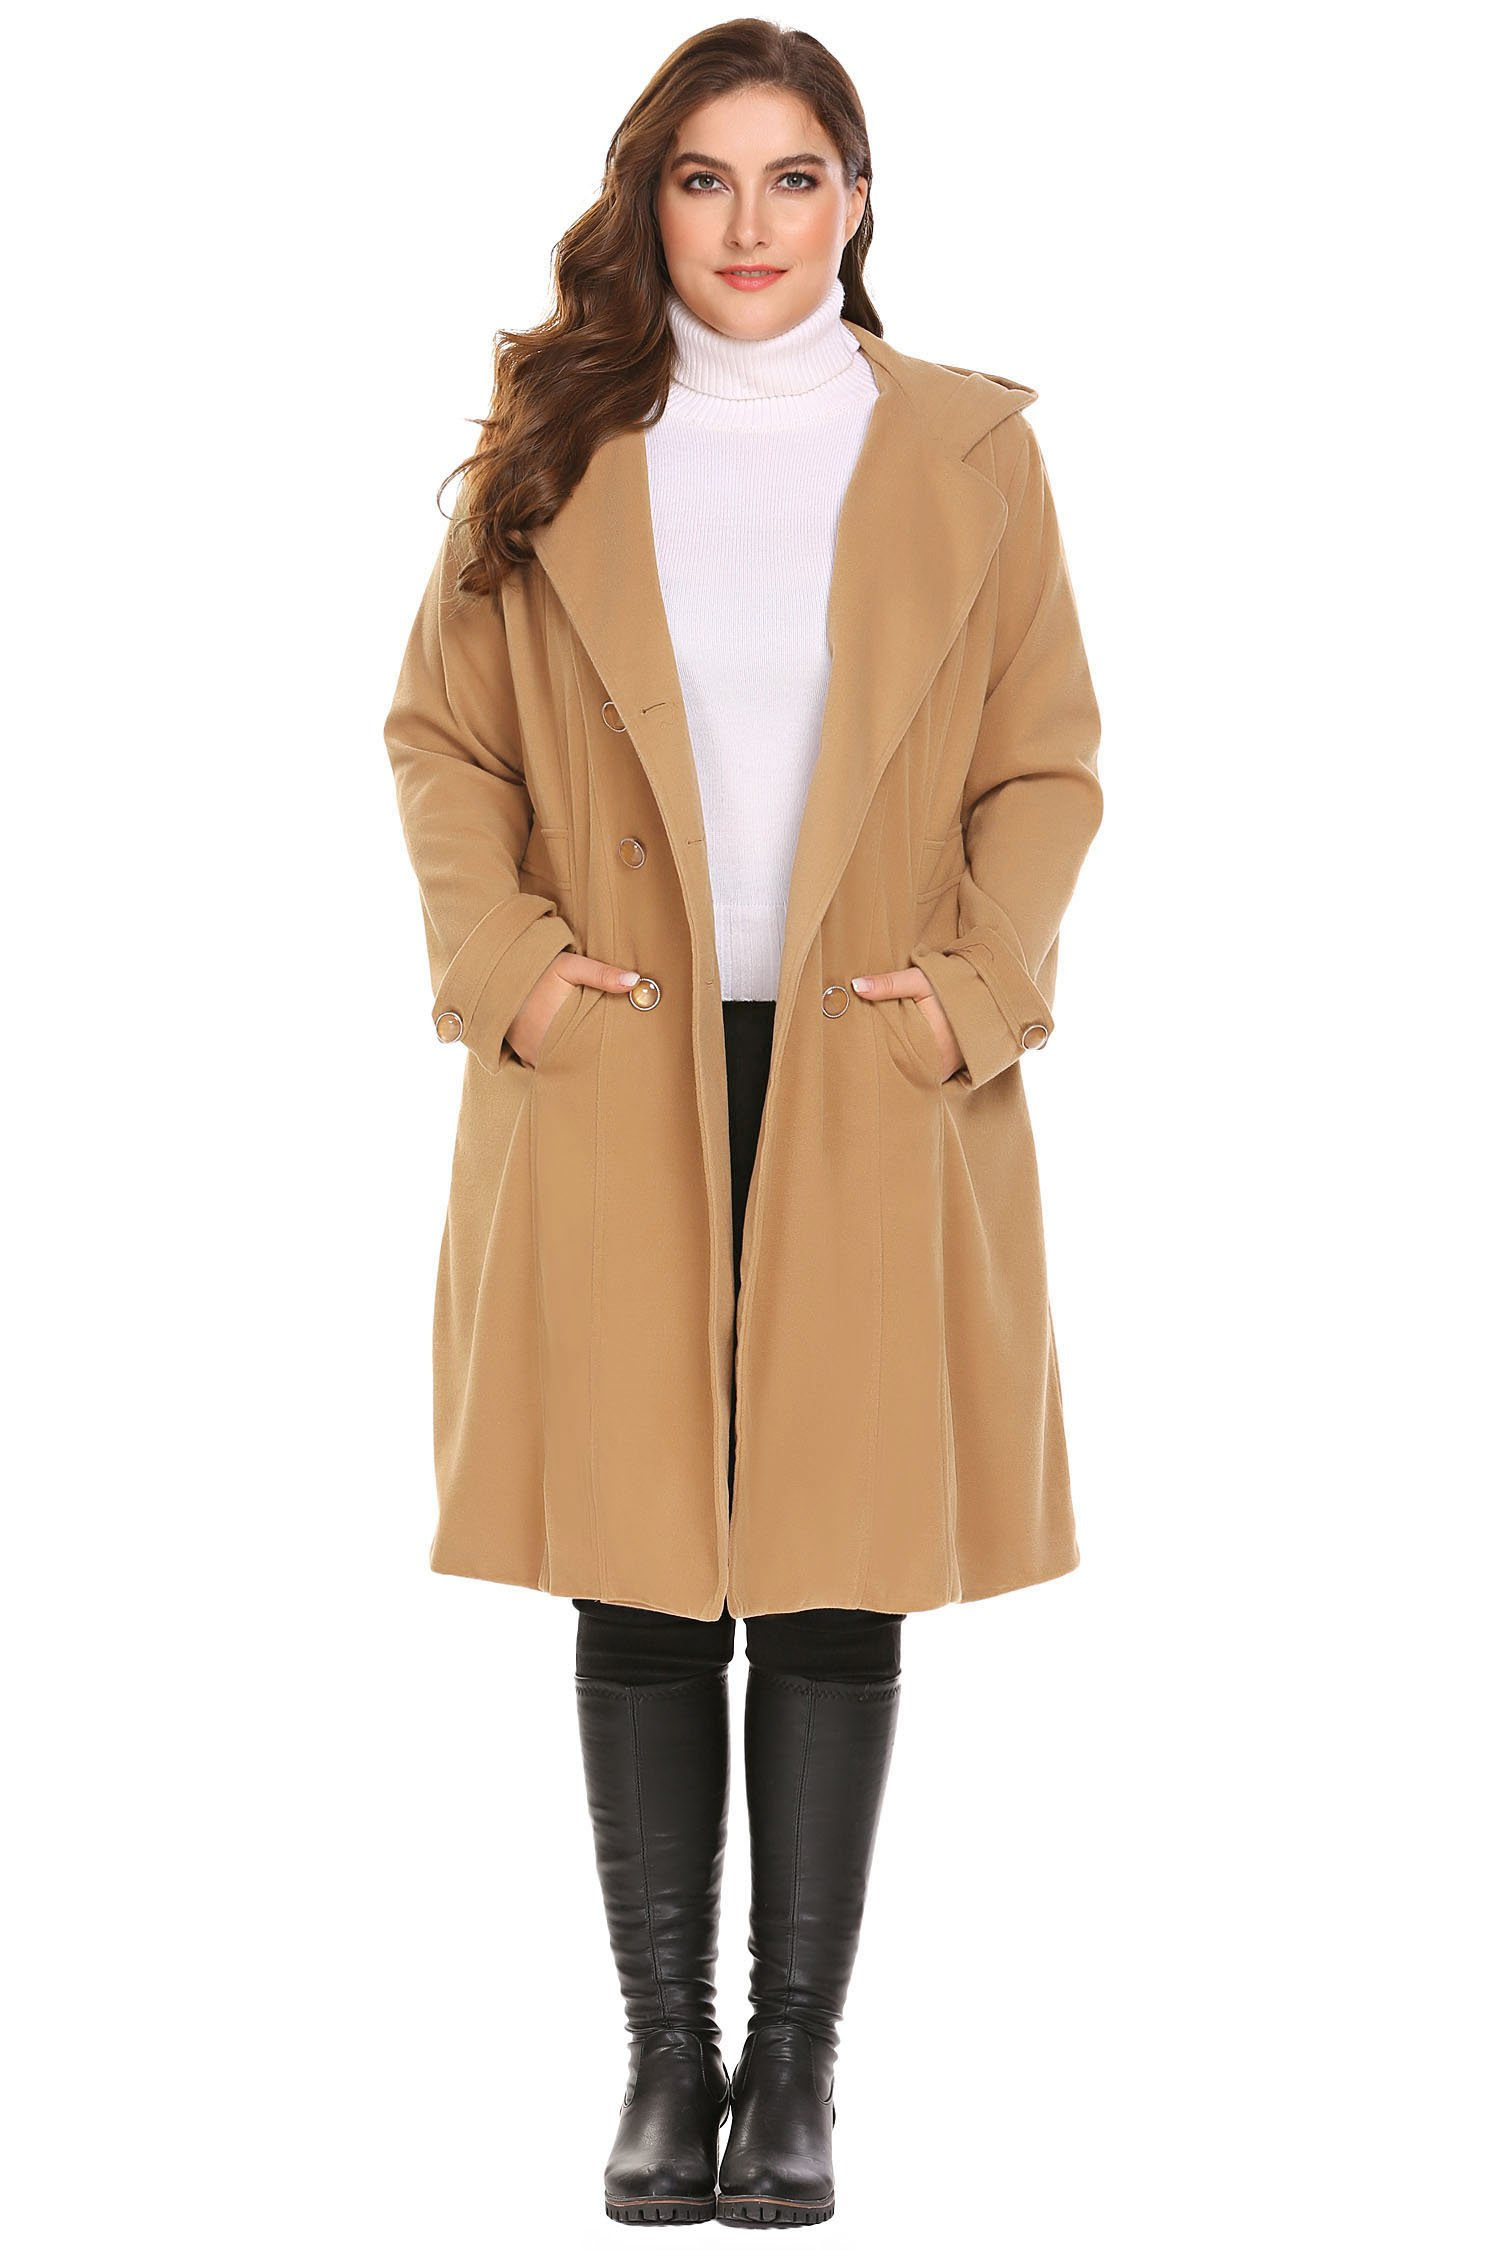 Zeagoo Women Plus Size Double Breasted Wool Elegant Long Lined Lightweight Trench Coat (16W-24W)